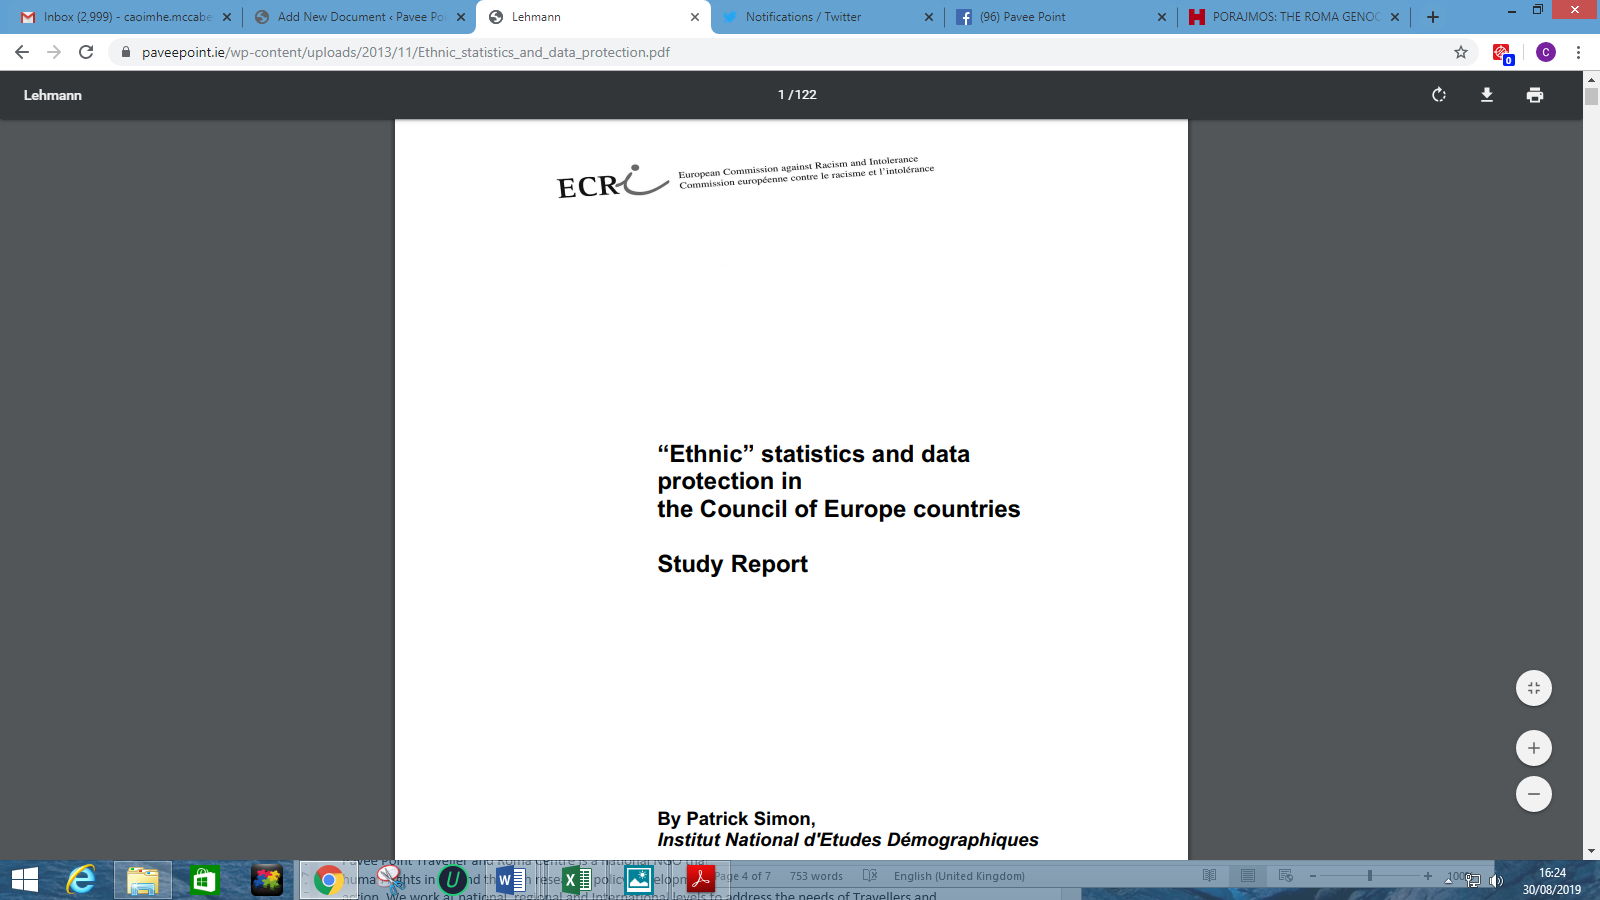 Ethnic Statistics and Data Protection in the Council of Europe countries - ECRI